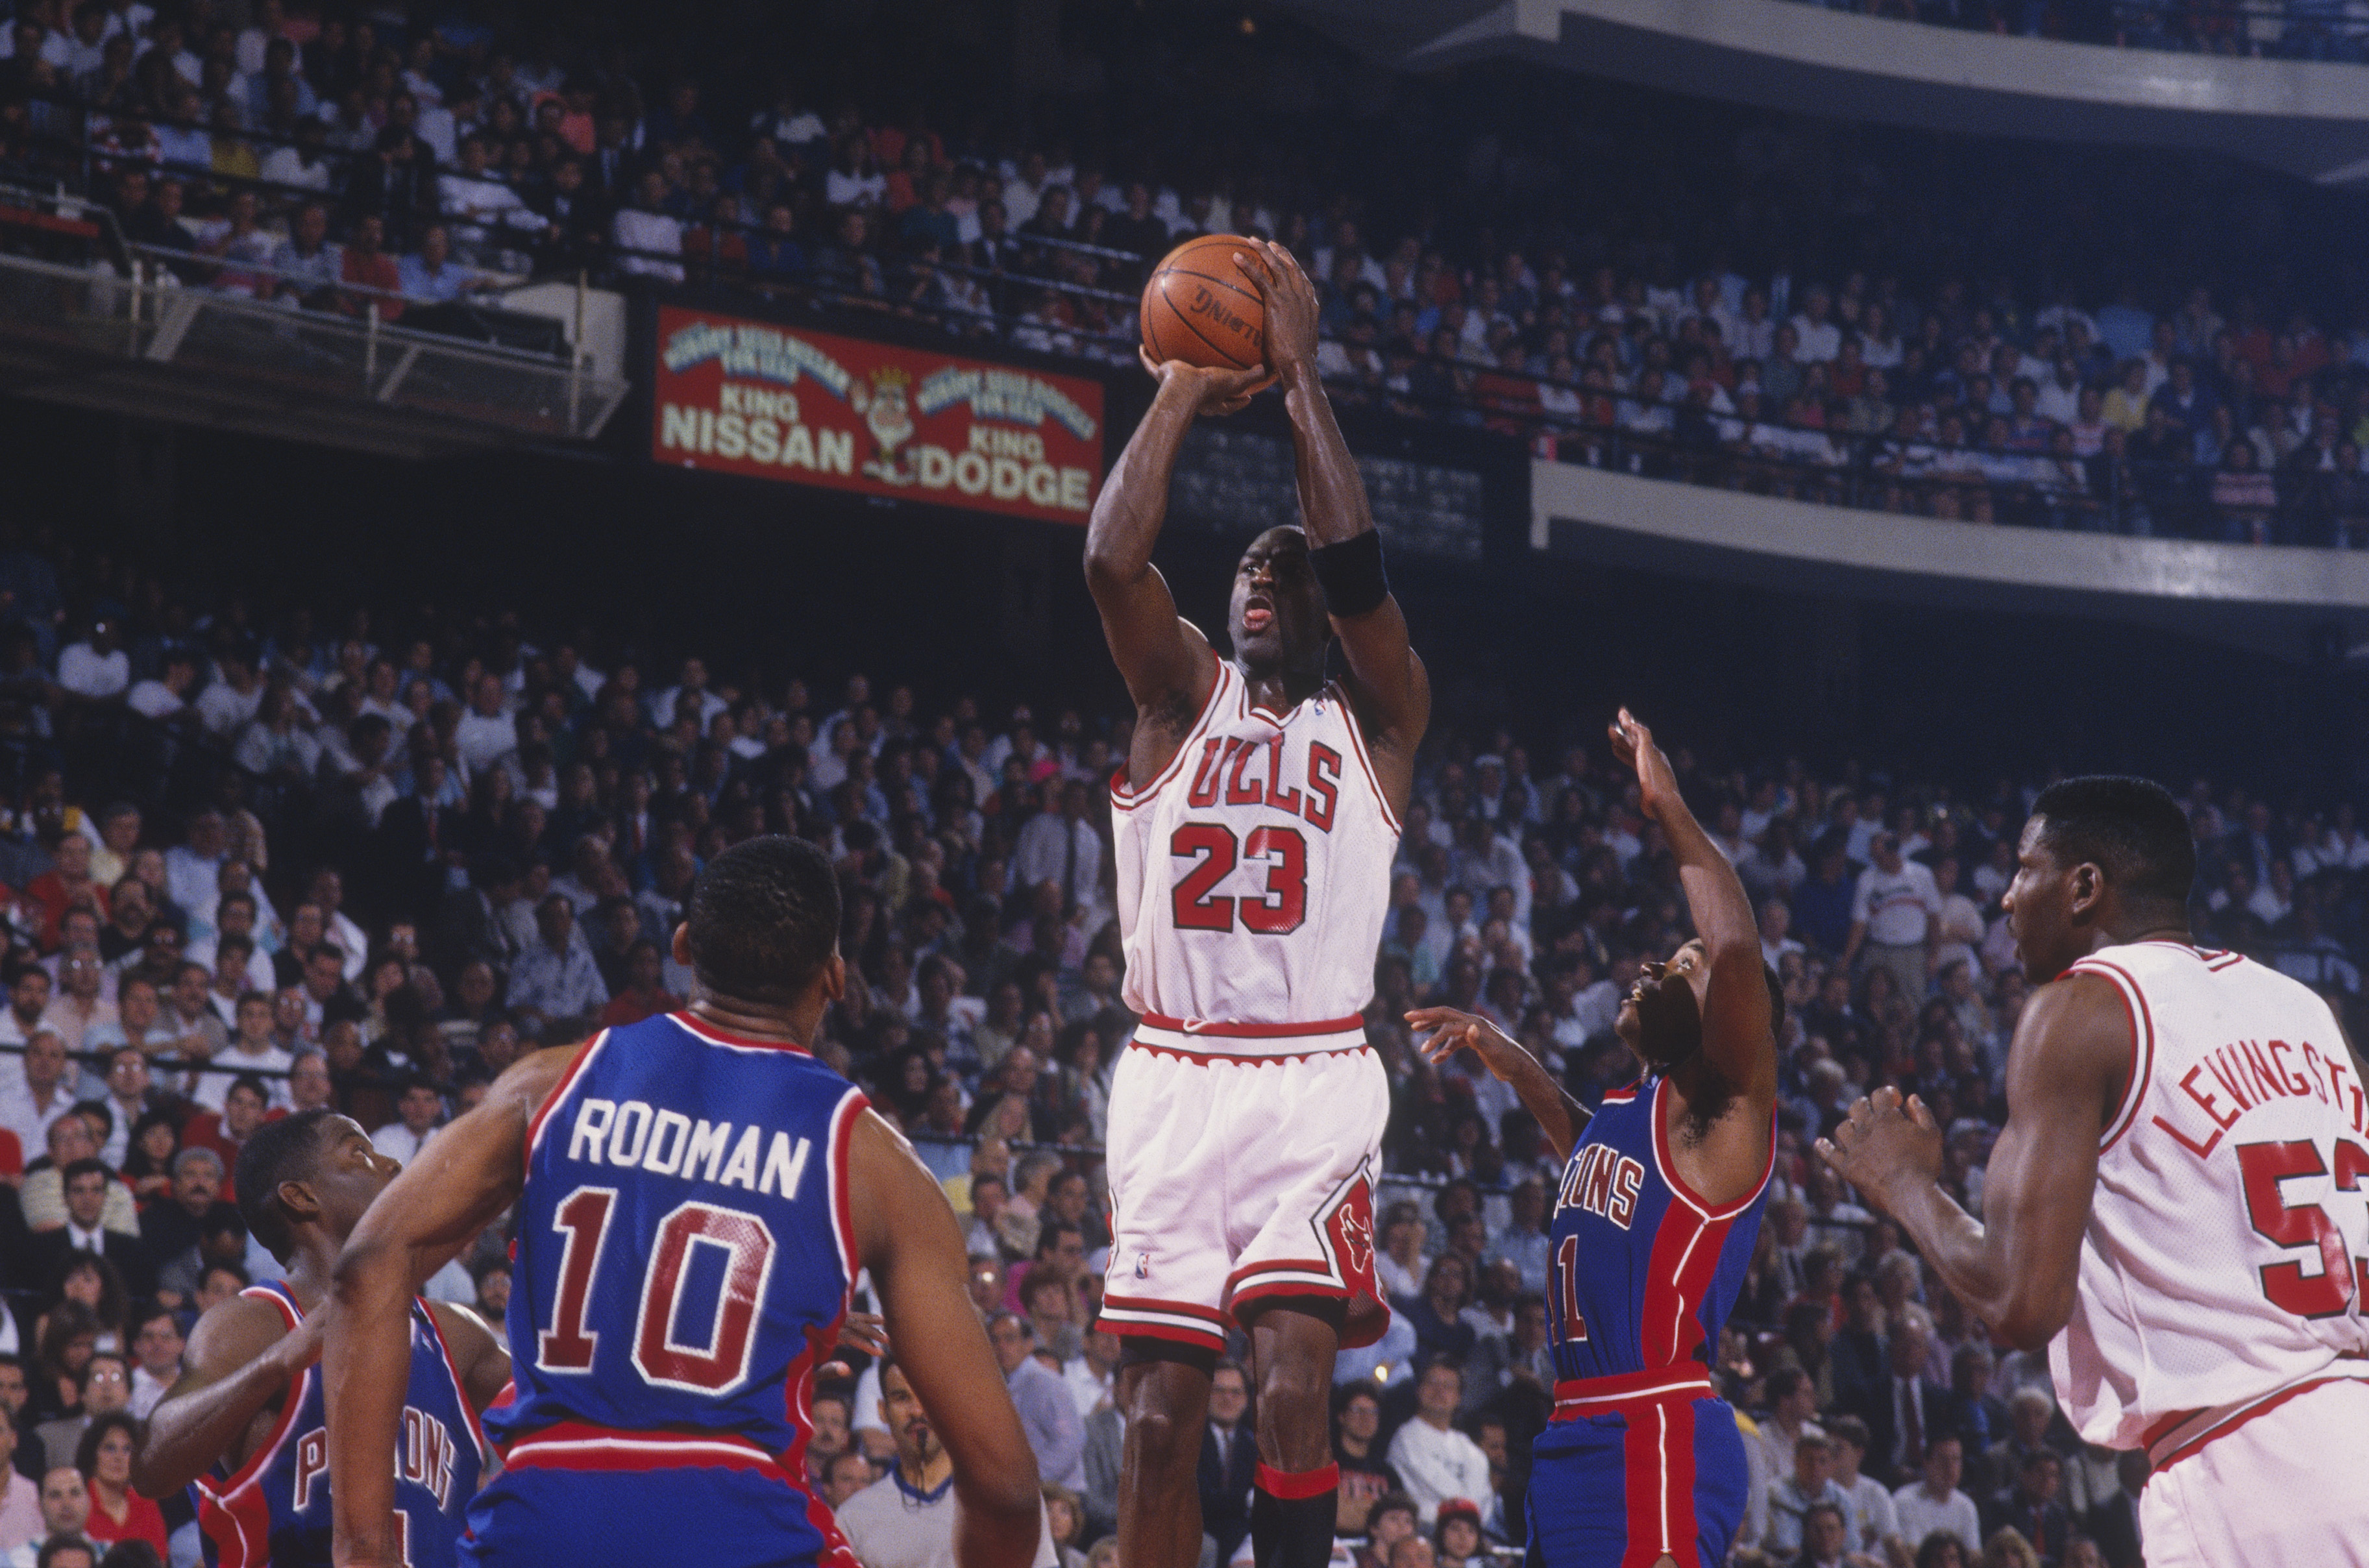 Michael Jordan of the Chicago Bulls jumps to shoot a basket against the Detroit Pistons